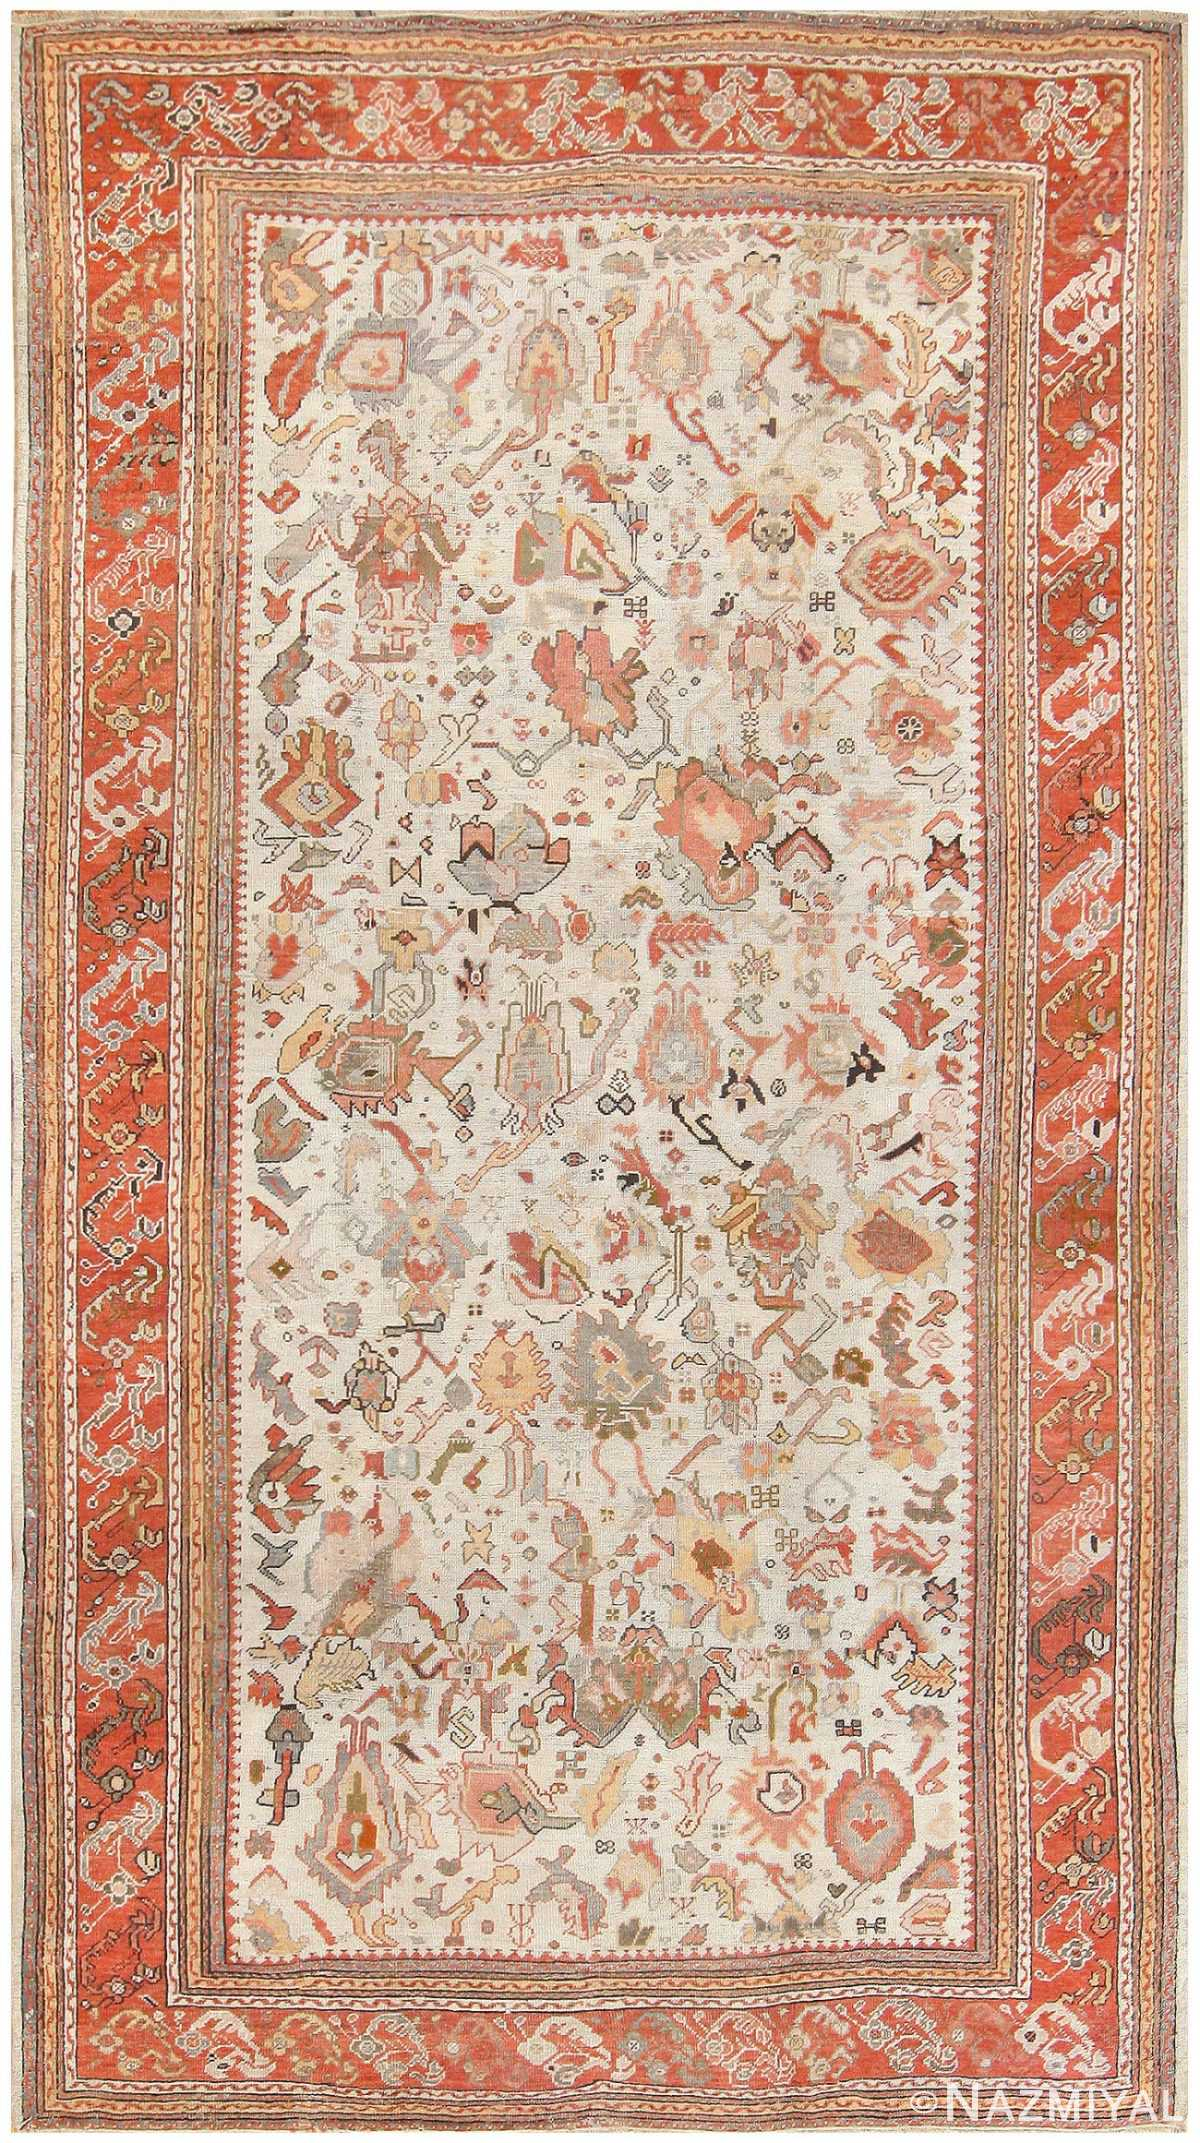 Antique Ghiordes Turkish Carpet 50133 Nazmiyal